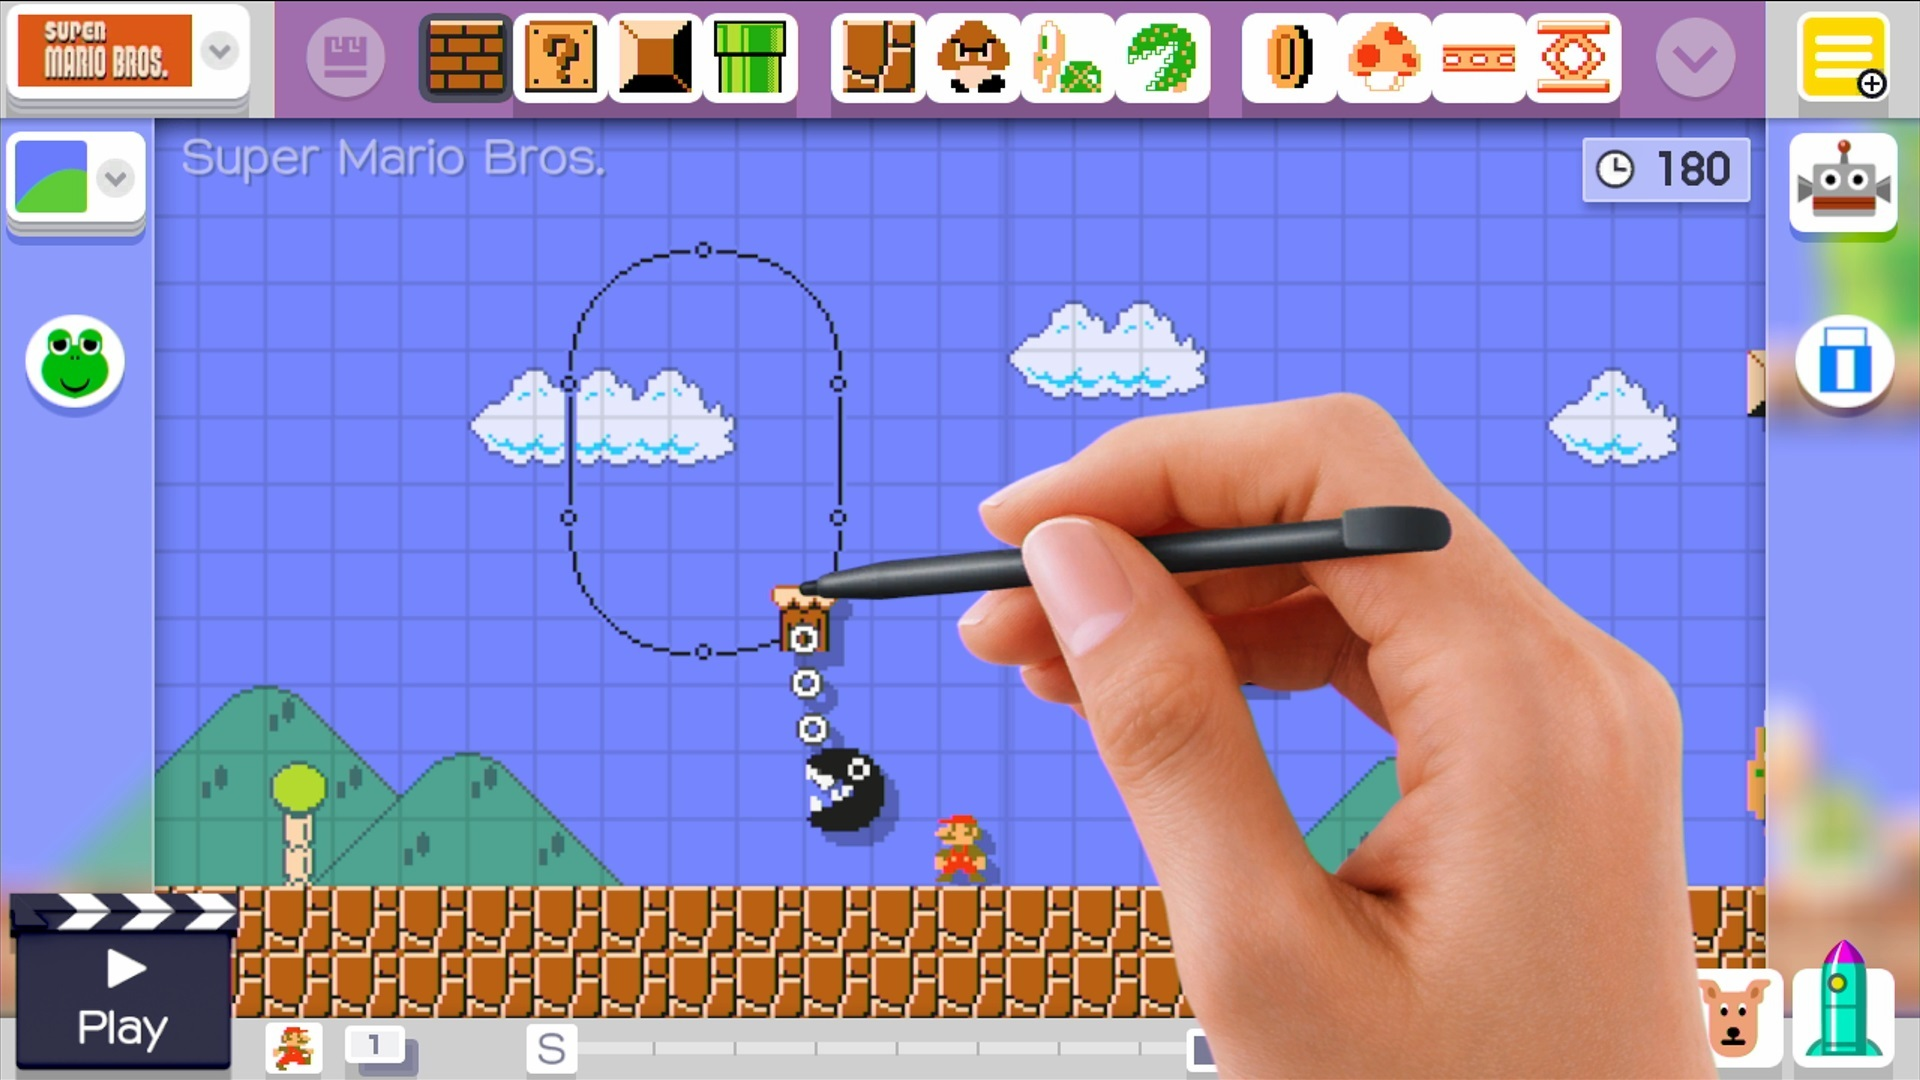 2015: Super Mario Maker                                                              Three decades after a mustachioed Italian plumber captured our imaginations and changed the course of gaming, the series has come full circle with a Mario creation tool that finally unleashes armchair Mario designers, using an interface ideally suited for Nintendo's tablet-driven Wii U.